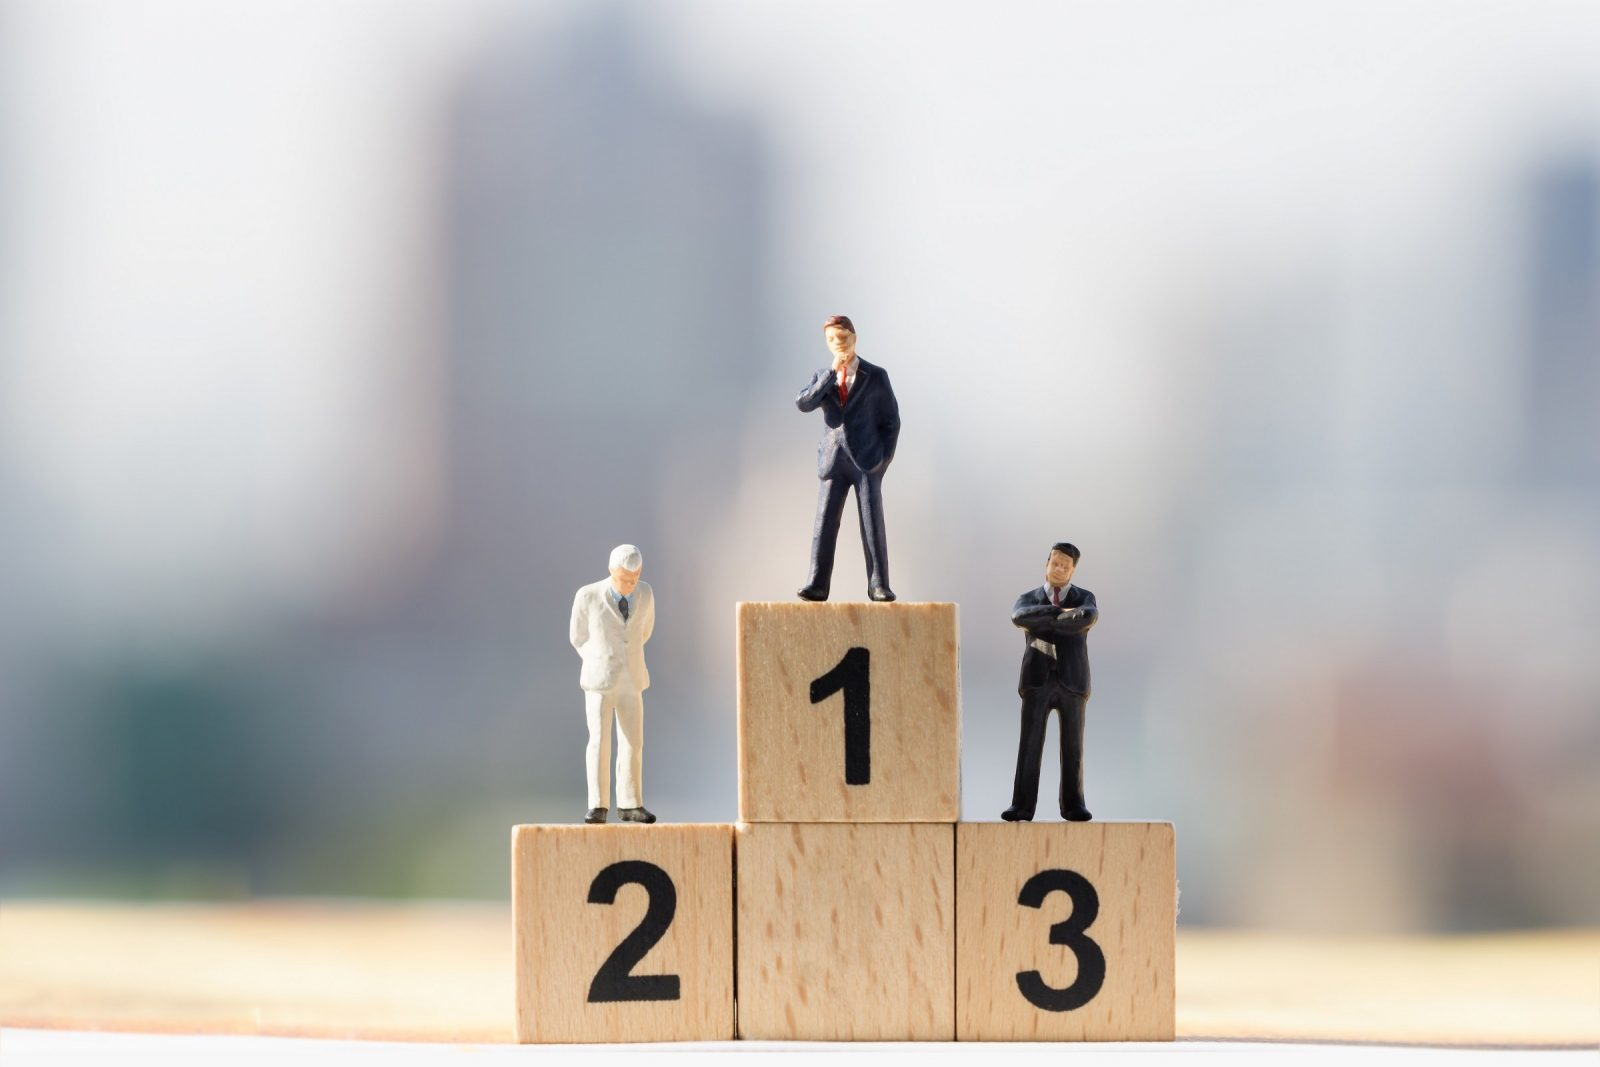 Three figurines sit atop blocks numbered one through three to show each person's ranking.